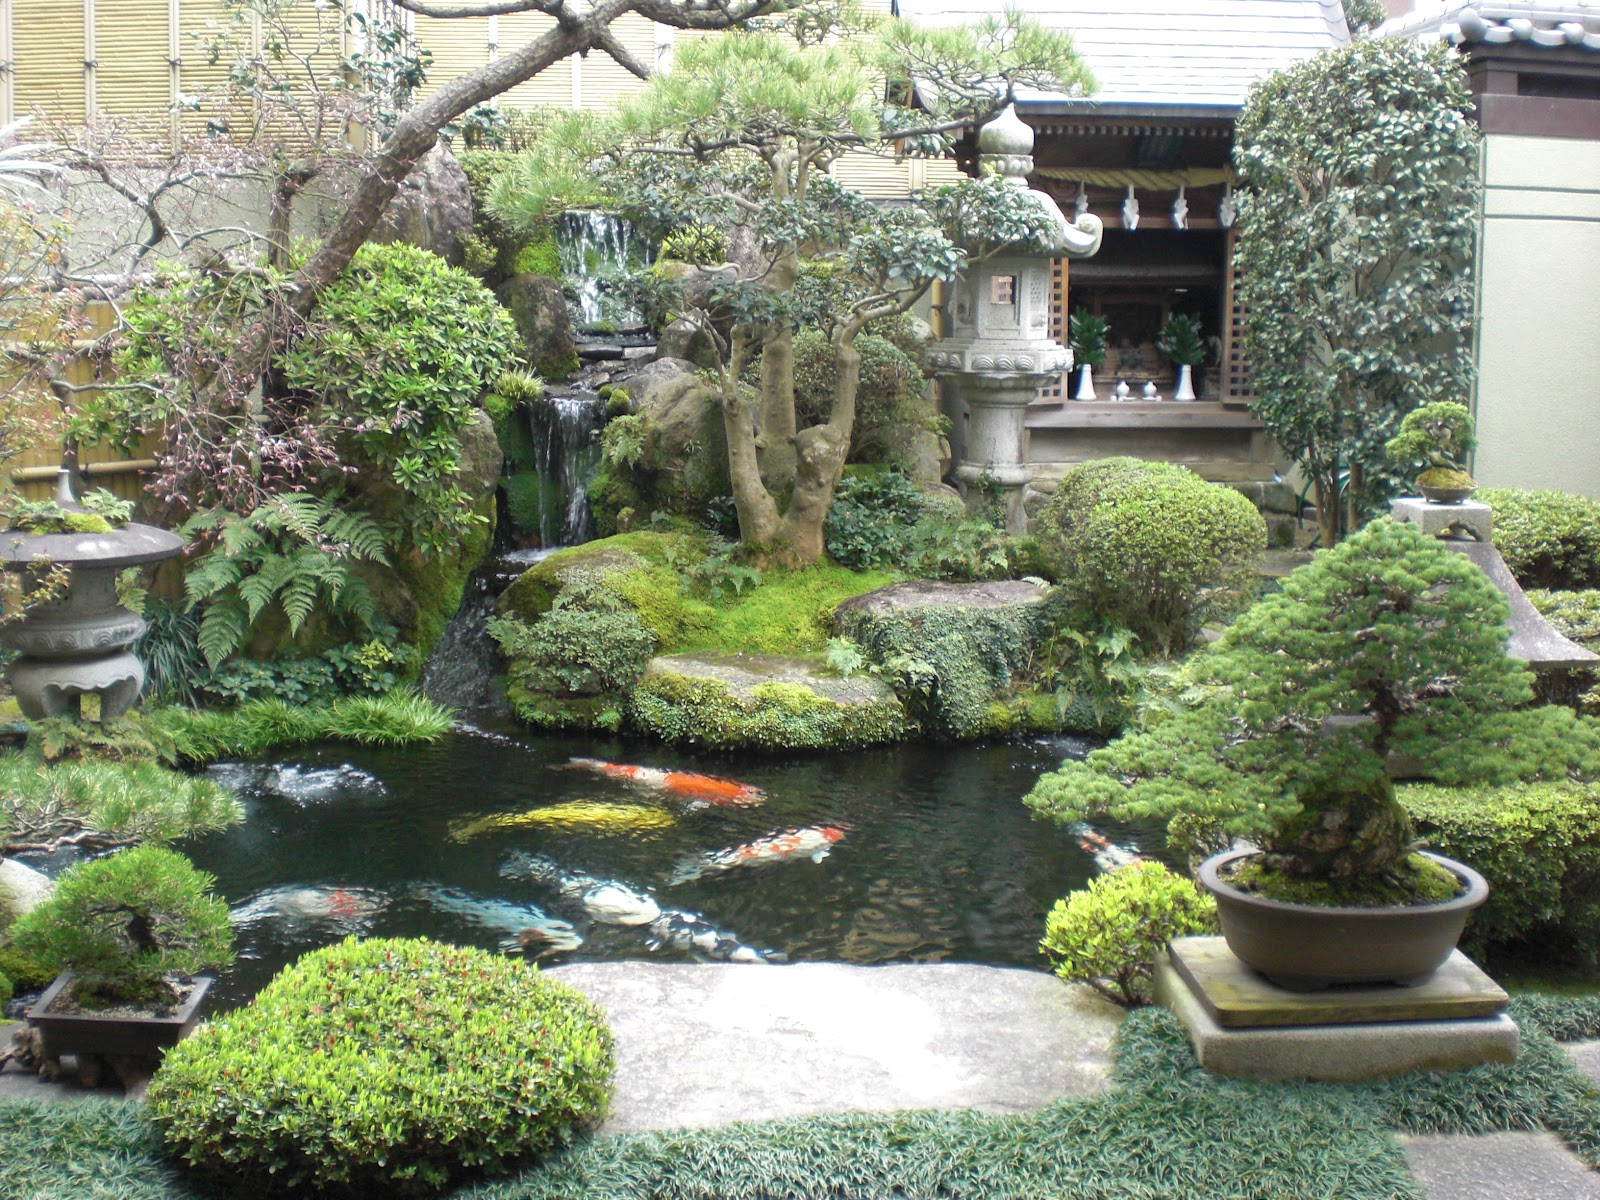 japanese water garden koi pond with waterfall this is absolutely zen a must have mrsilverscott mrdrewscott pinmydreambackyard pinterest japanese